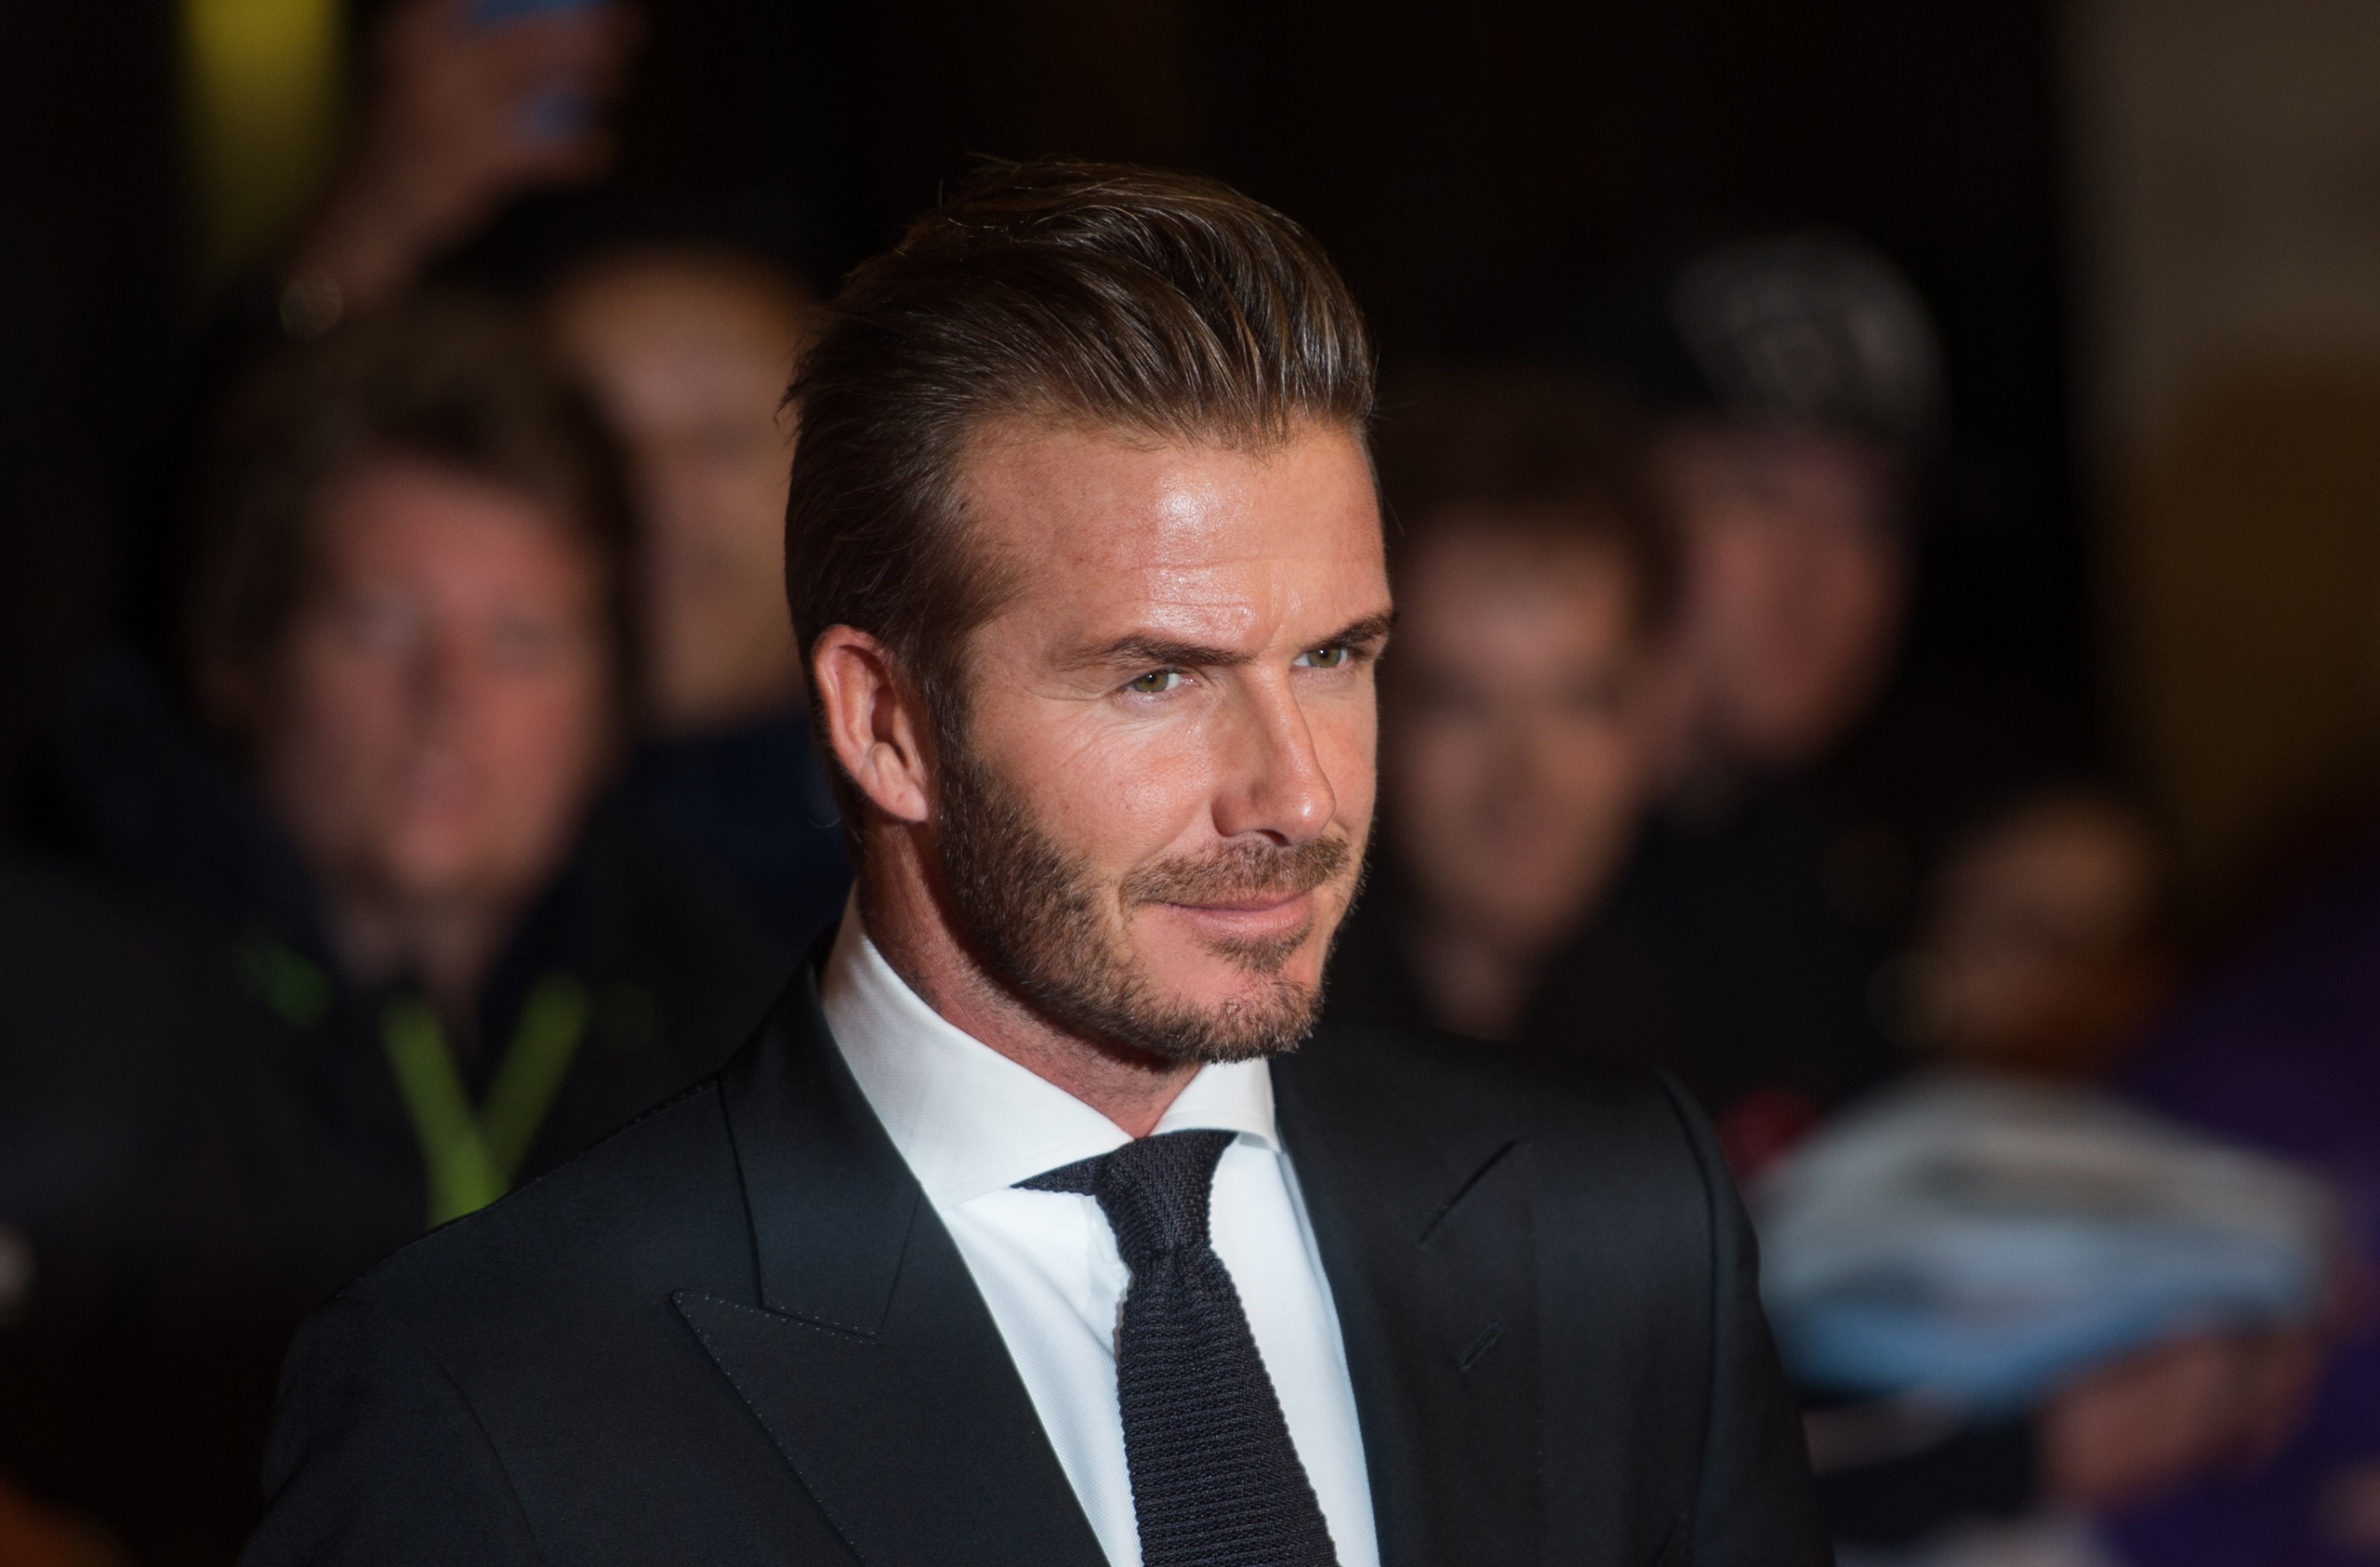 David Beckham attends the Pride of Britain awards at The Grosvenor House Hotel in London on Sept. 28, 2015 .